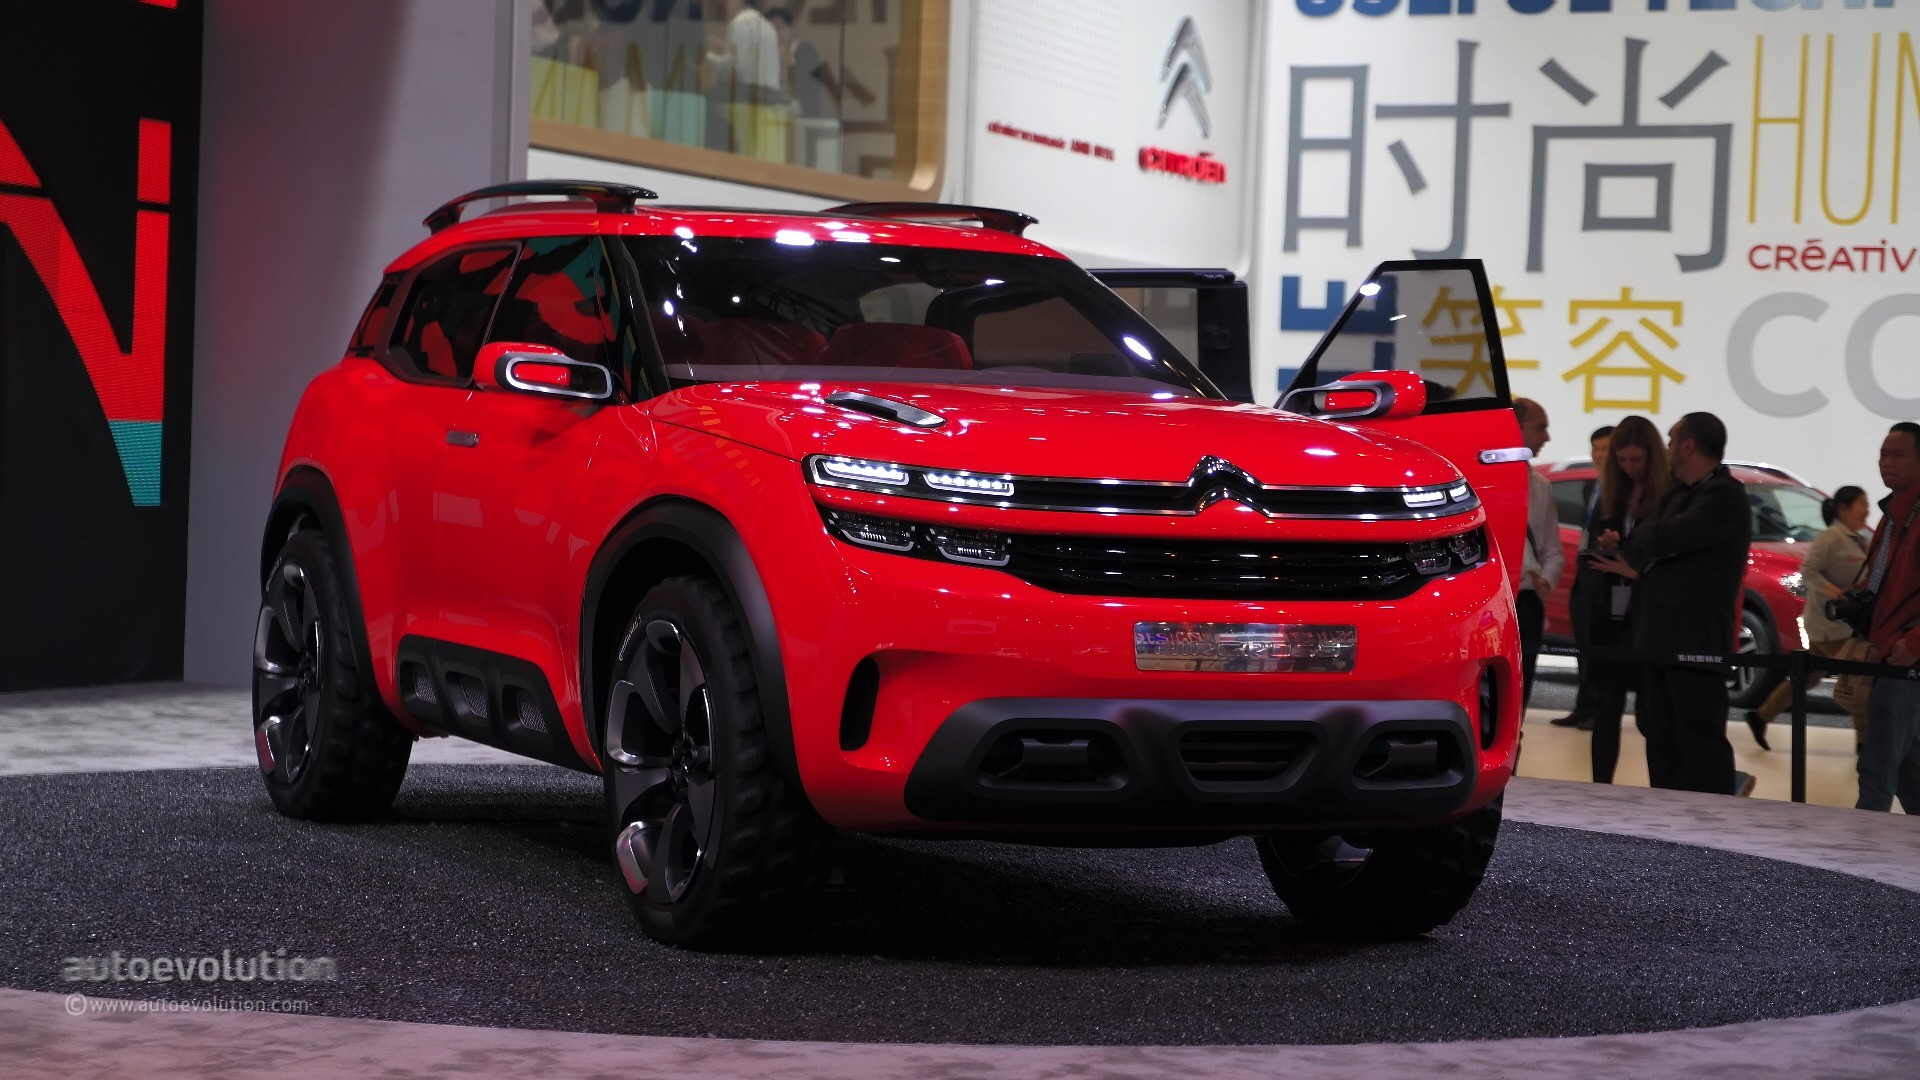 2018 Crossover Vehicles >> Citroen Aircross Concept Makes a First Appearance at the 2015 Shanghai Auto Show - autoevolution